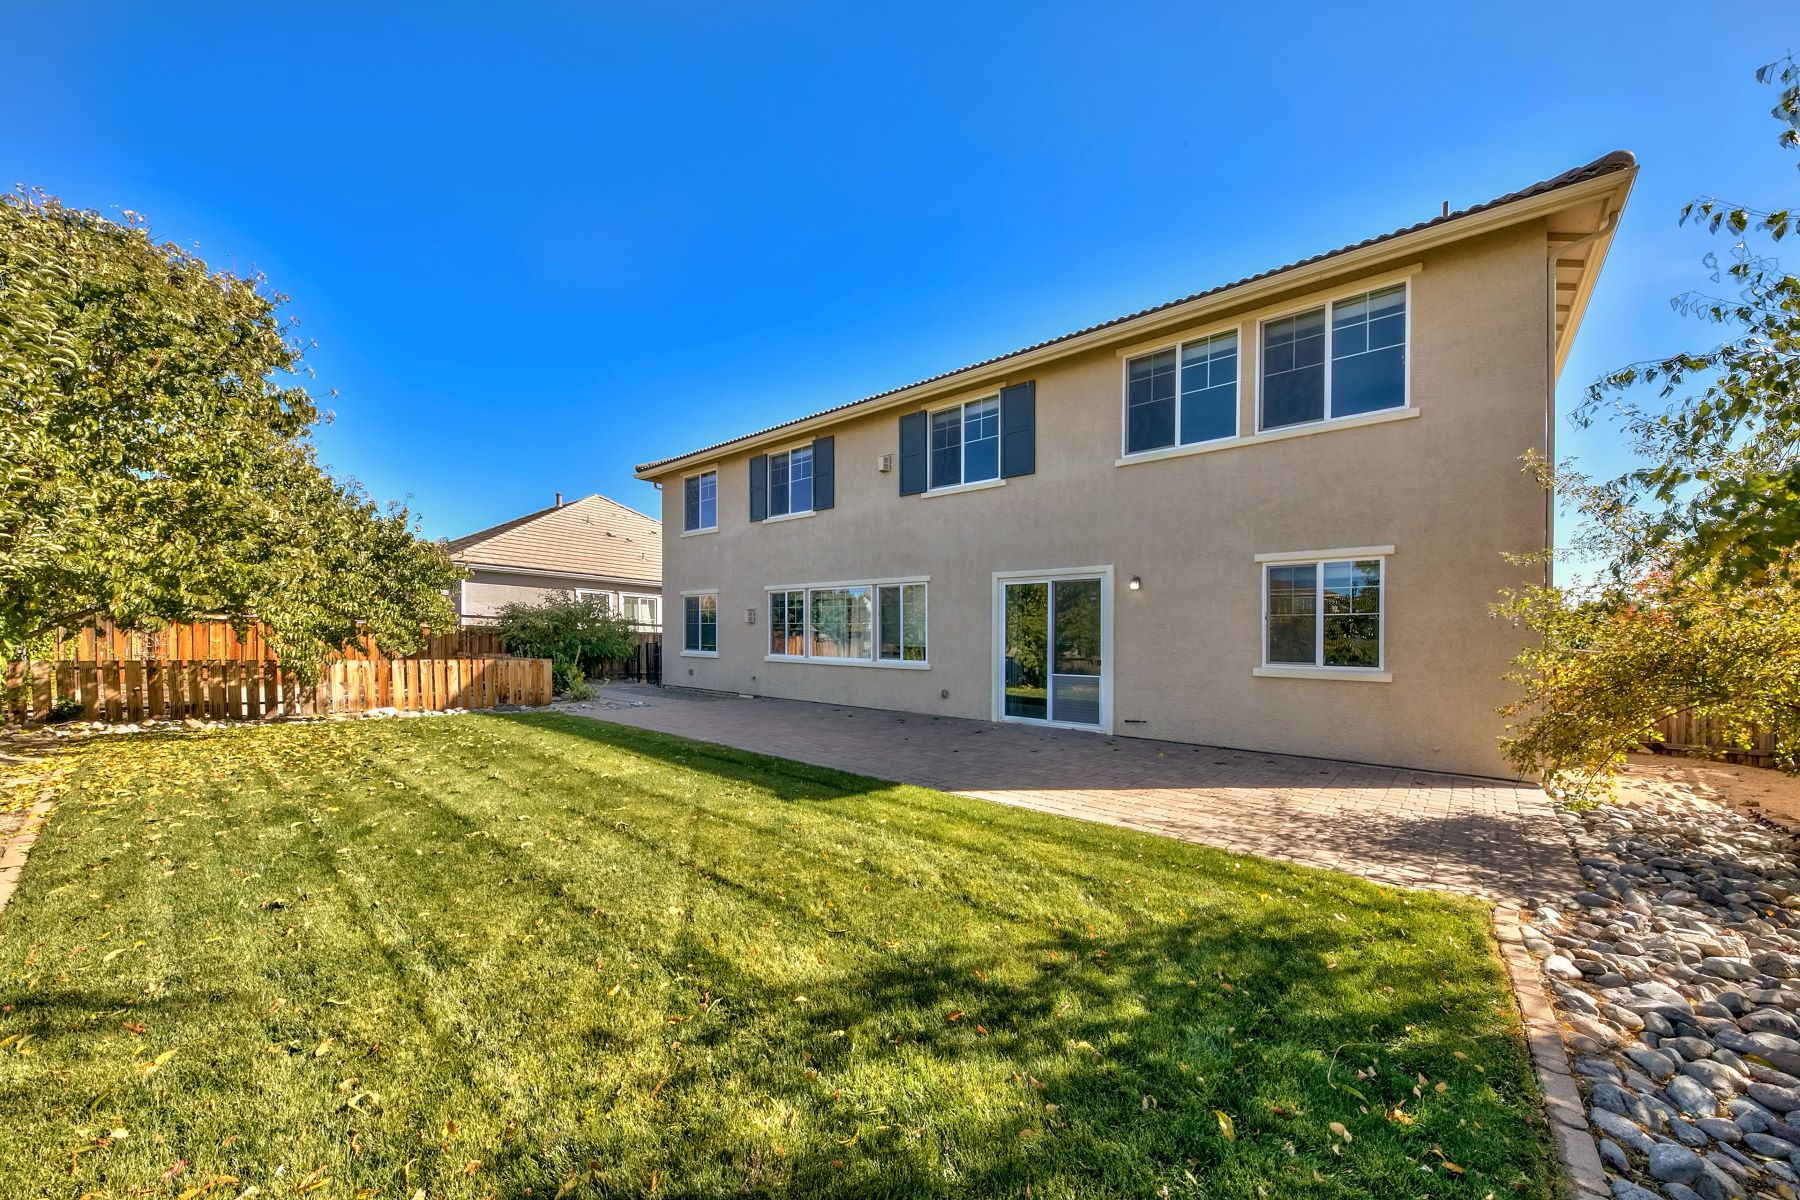 Additional photo for property listing at 6571 Voyage Drive, Sparks, NV 6571 Voyage Drive Sparks, Nevada 89436 Estados Unidos